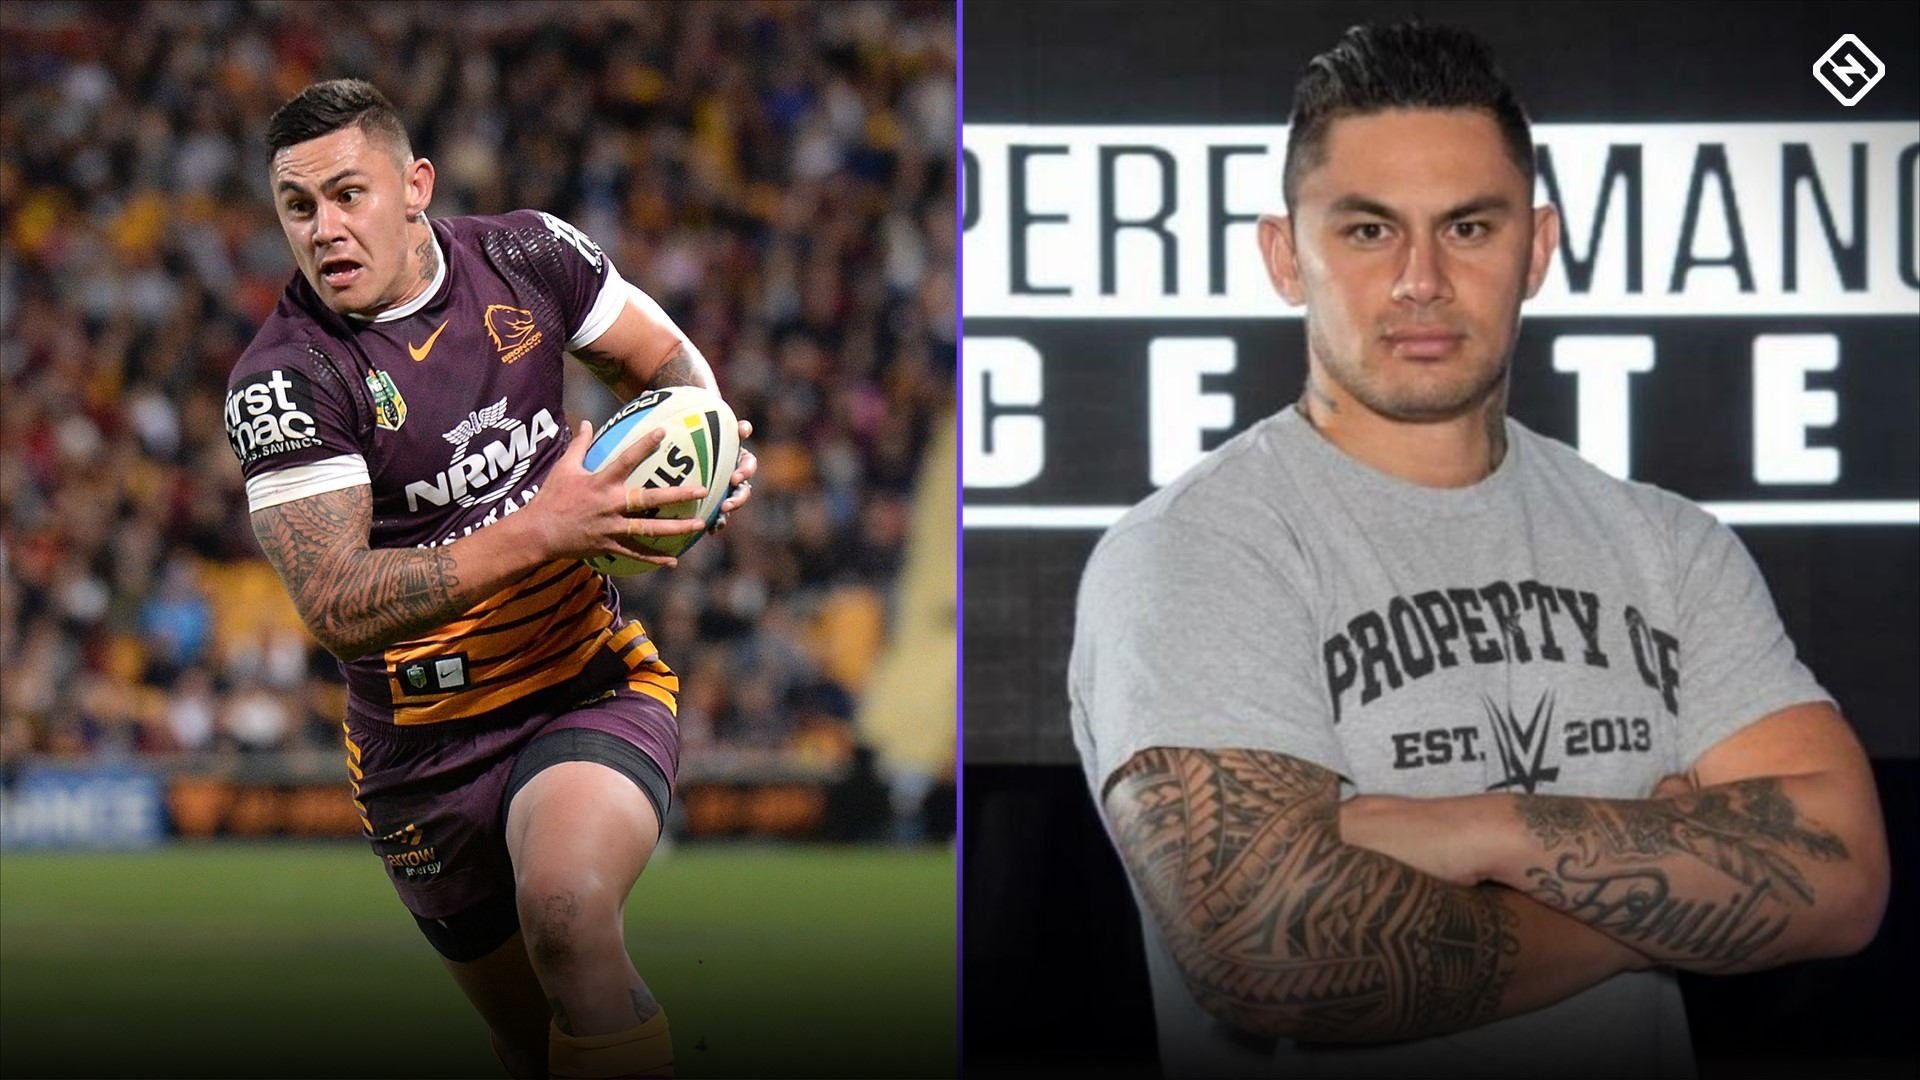 Former NRL star Daniel Vidot enjoying every moment of transition into professional wrestling with WWE